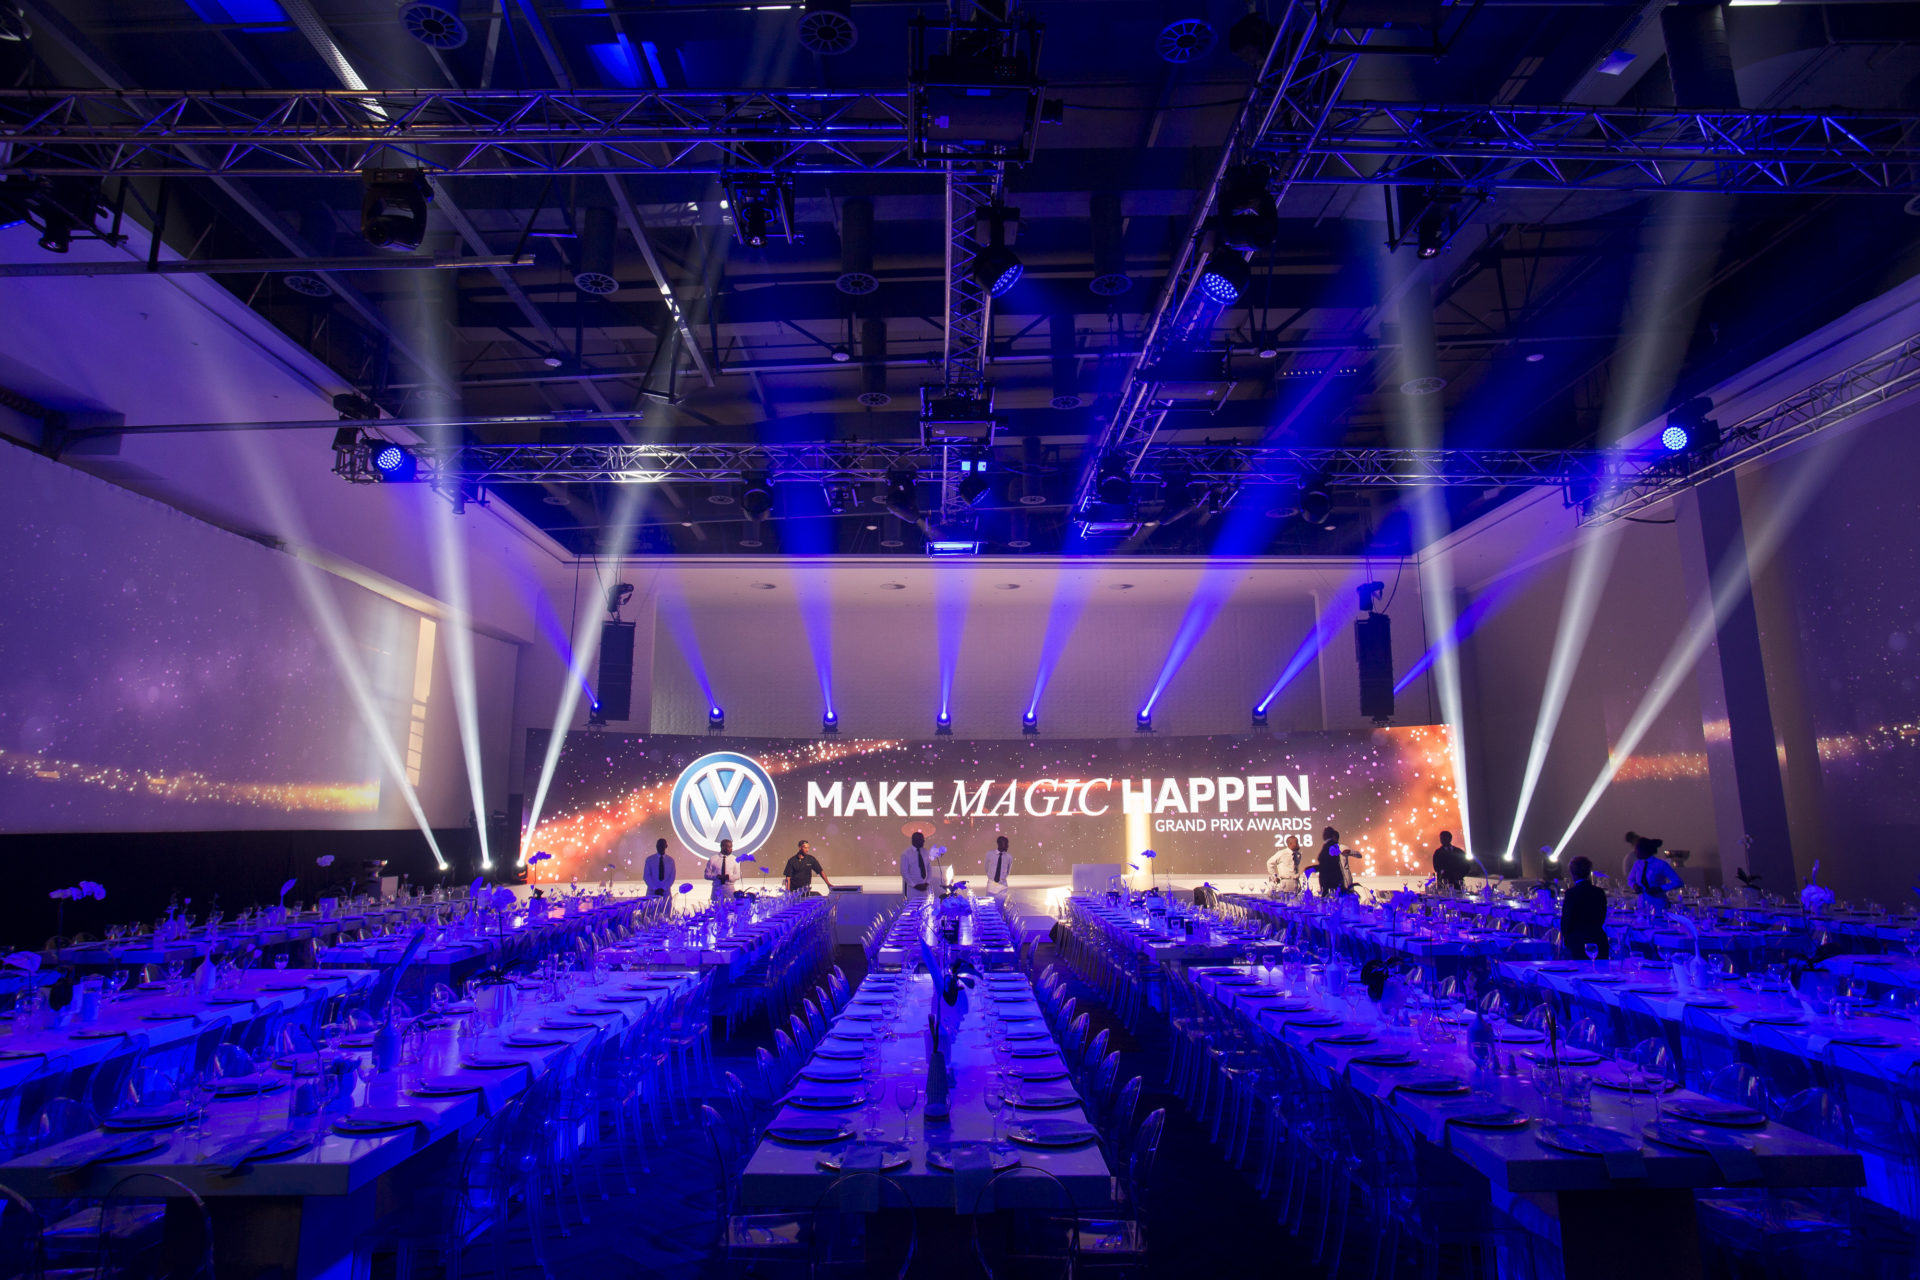 VOLKSWAGEN GRAND PRIX AWARDS & DEALER MEETING 2018